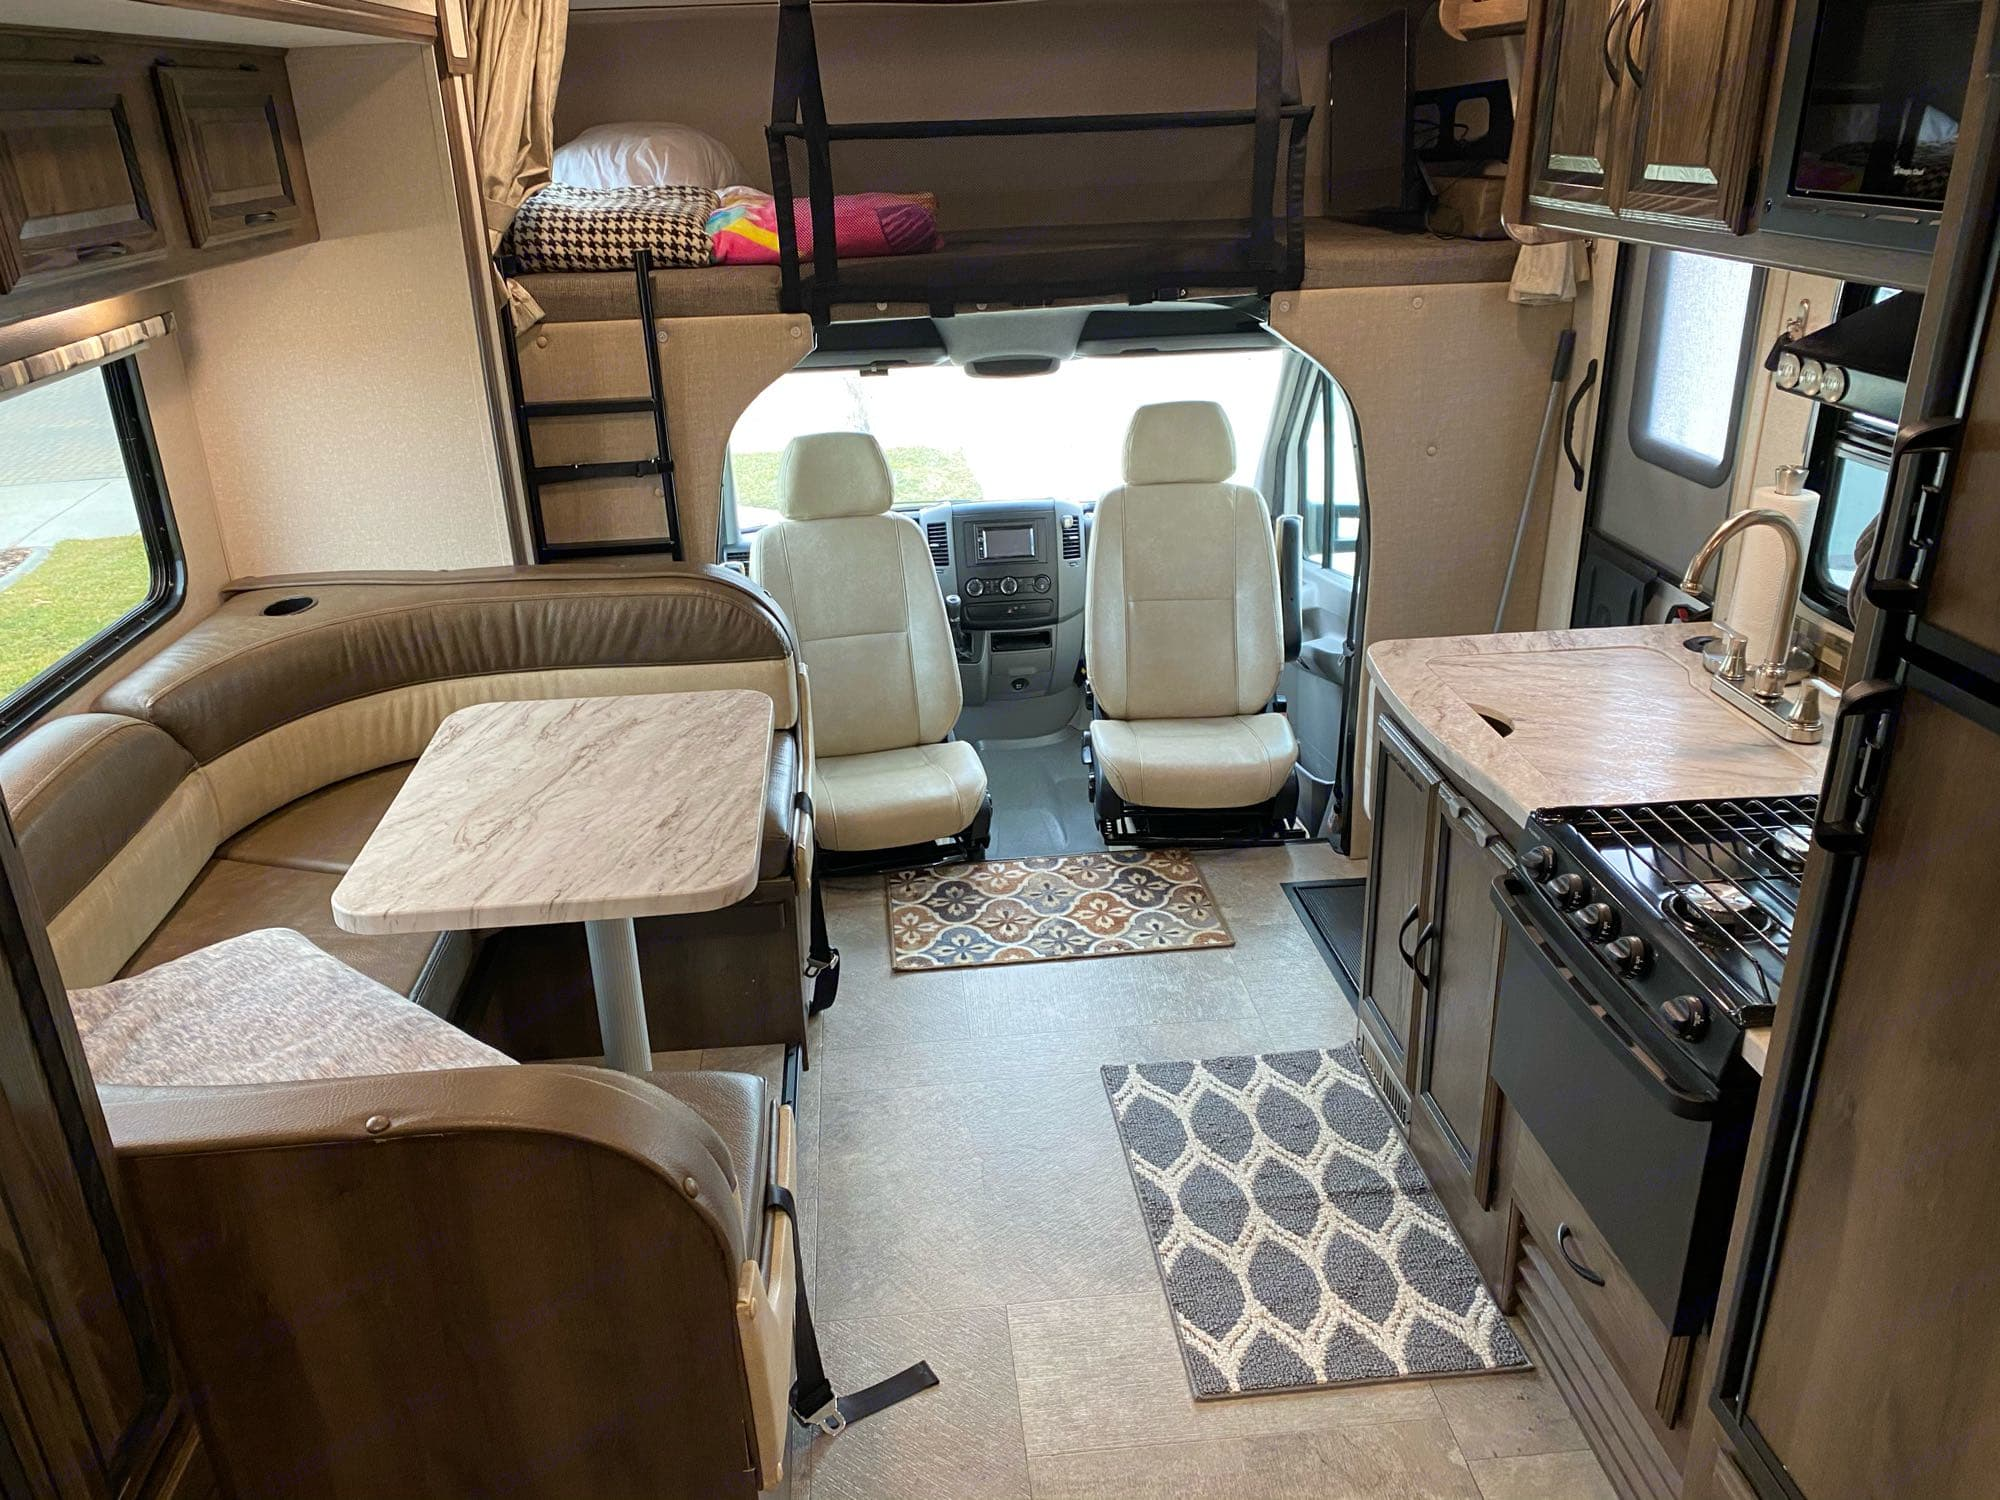 captains chairs swivel to make for more interior seating also see bunk bed. Coachmen Prism 2019